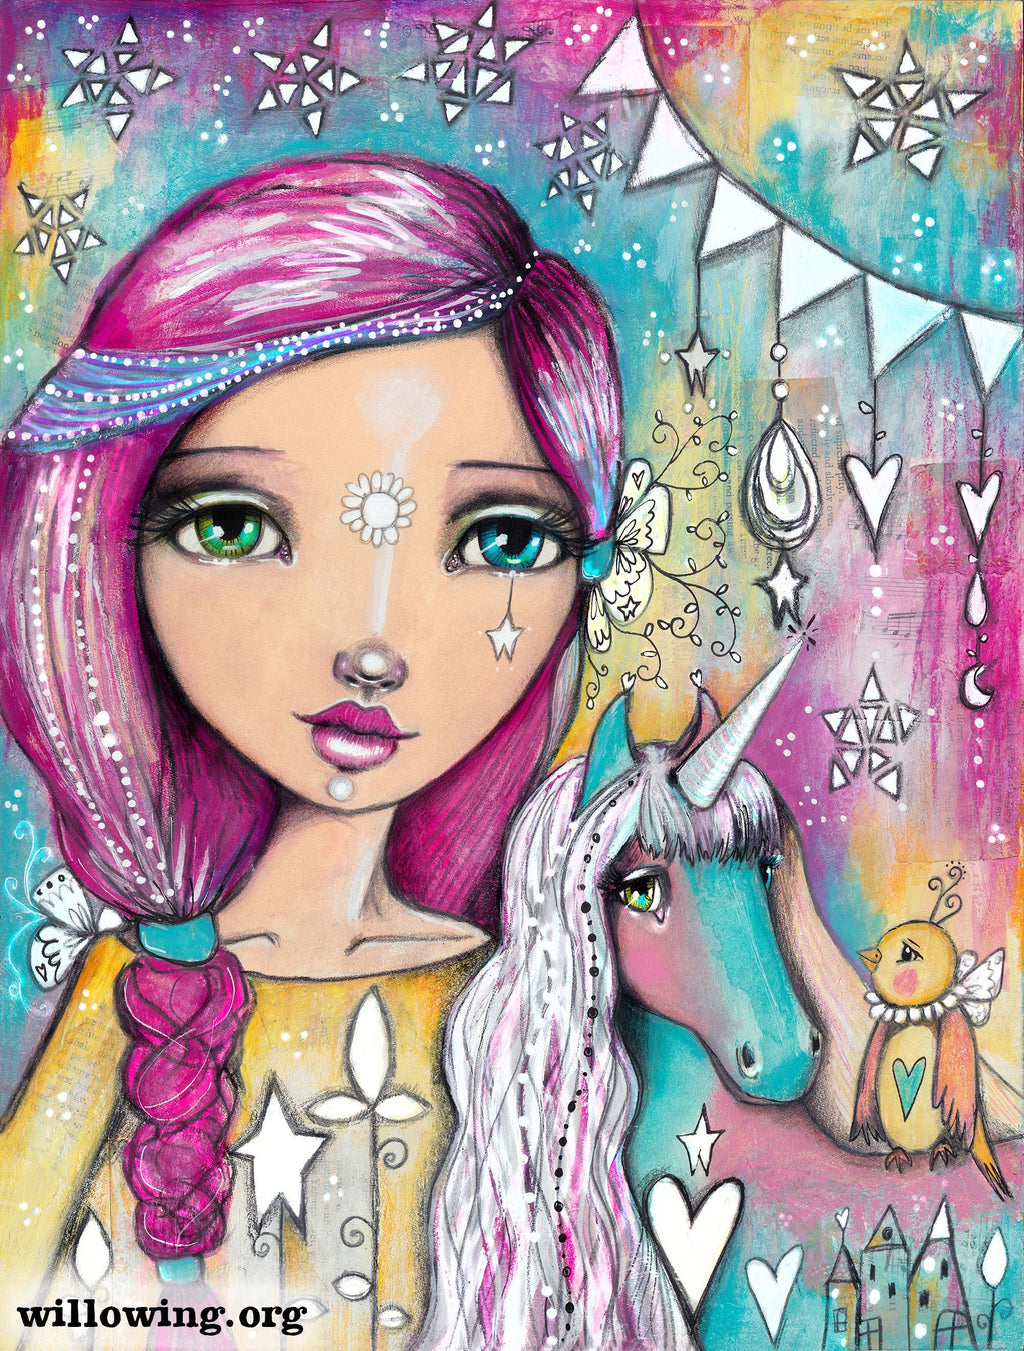 Willowing Arts Unicorn Girl Diamond Painting Kit - The Diamond Painting Factory